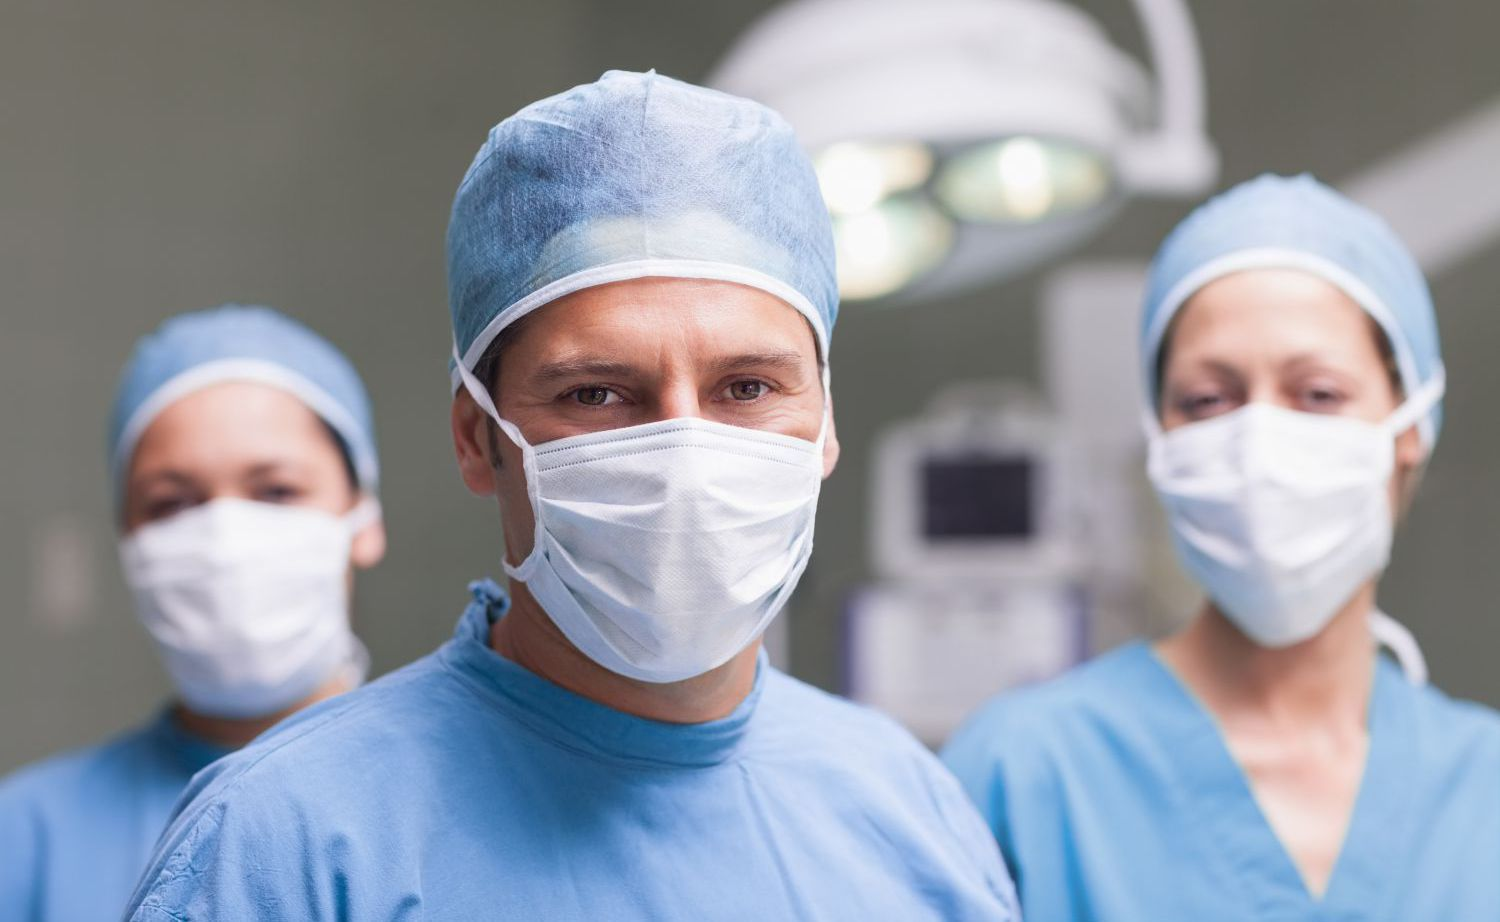 Surgical team using industrial gas in Chillicothe, OH